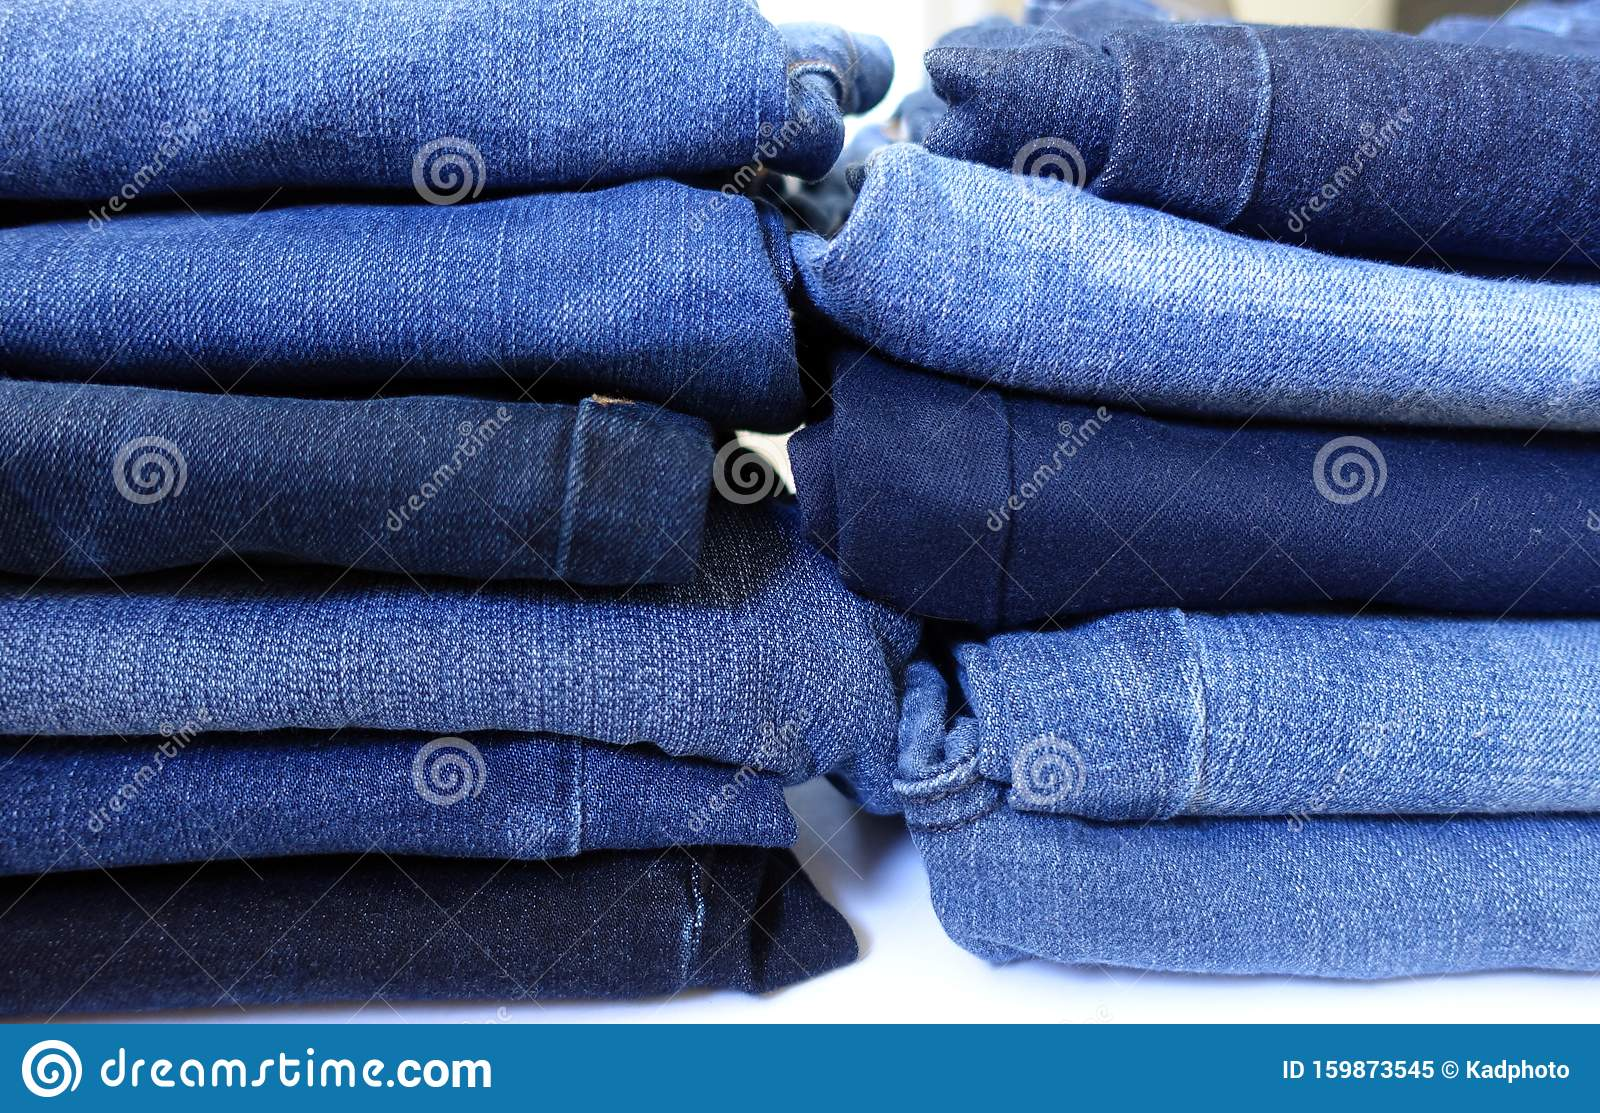 Two Piles of Denim Blue Jeans